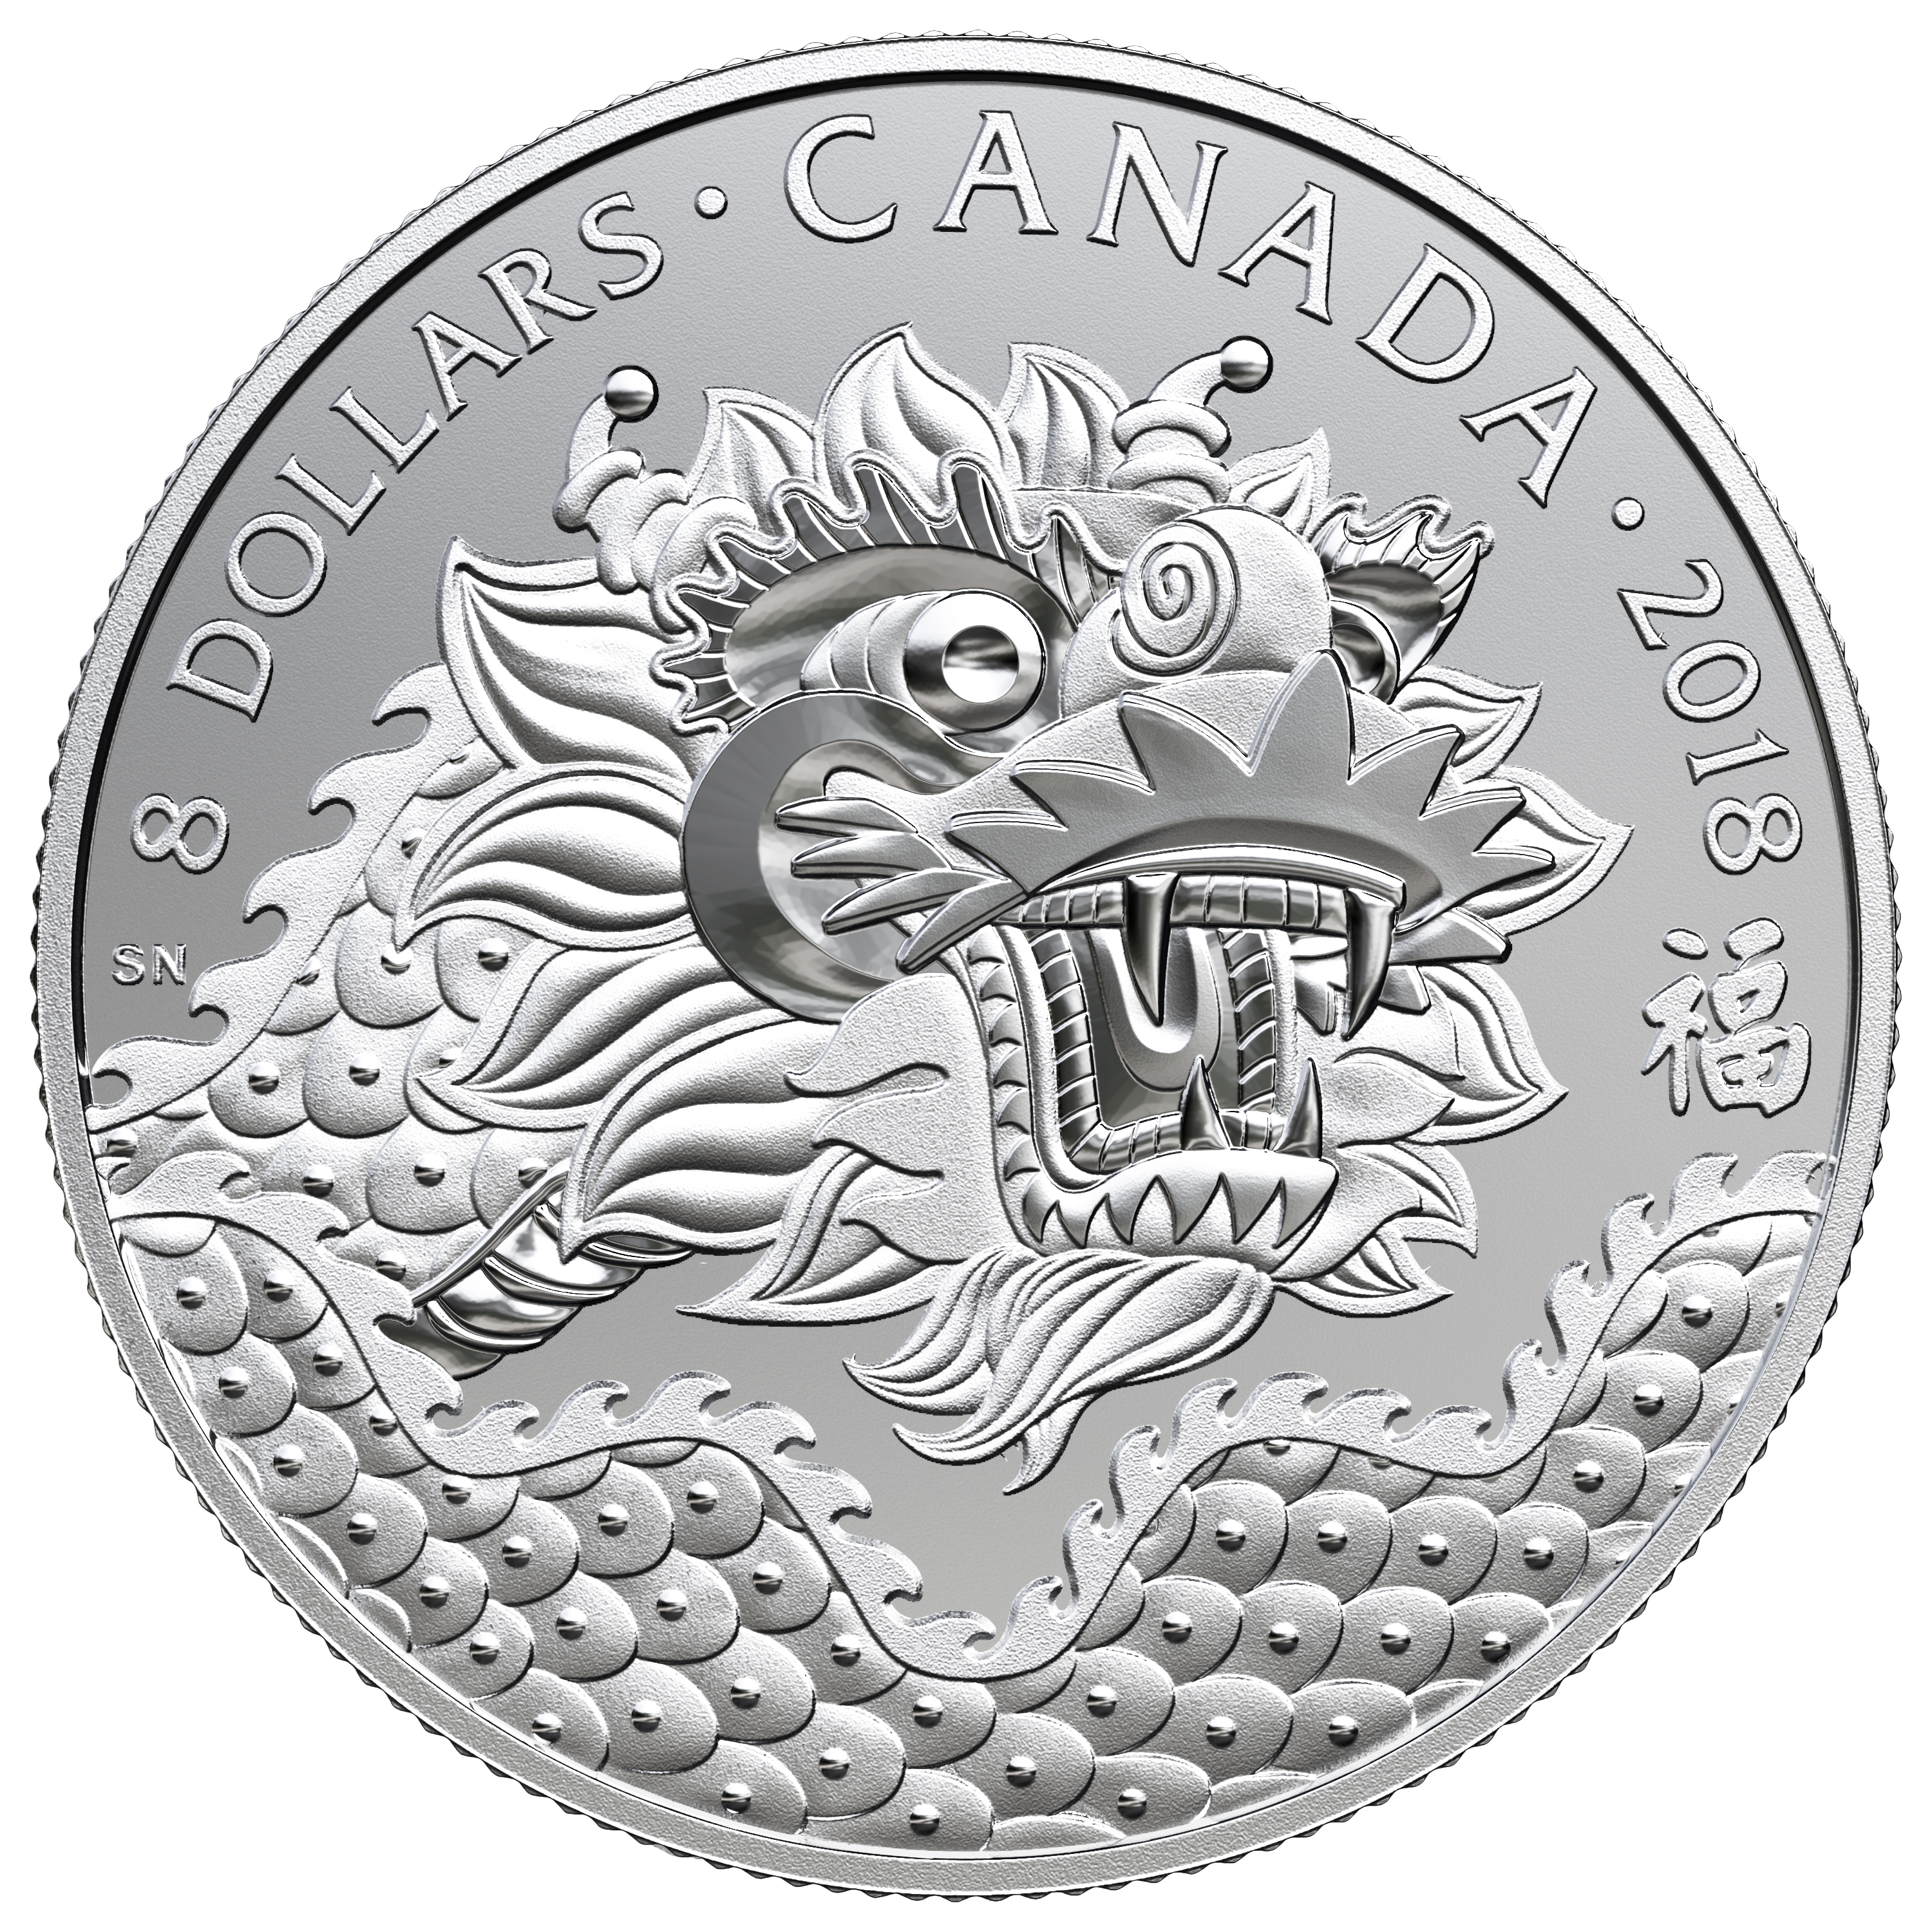 2018 8 fine silver coin dragon luck reverse canadian coin news 1927 Coins Argentina 2018 8 fine silver coin dragon luck reverse